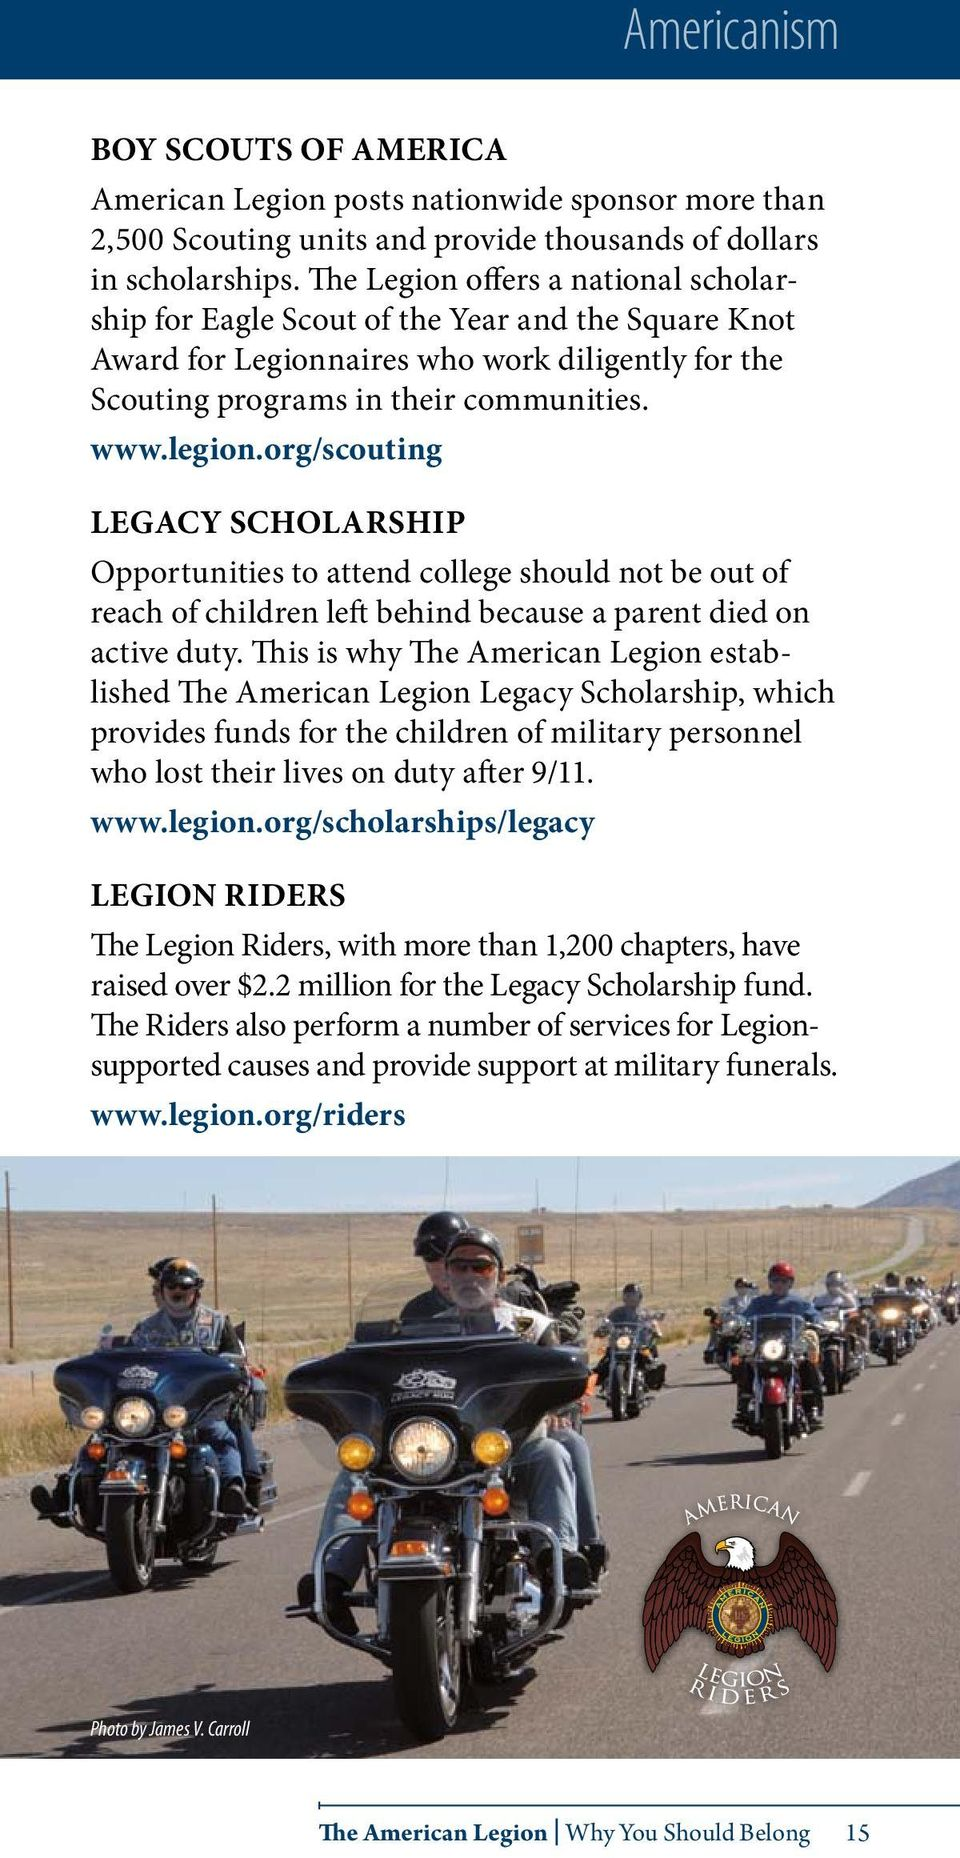 org/scouting Legacy Scholarship Opportunities to attend college should not be out of reach of children left behind because a parent died on active duty.